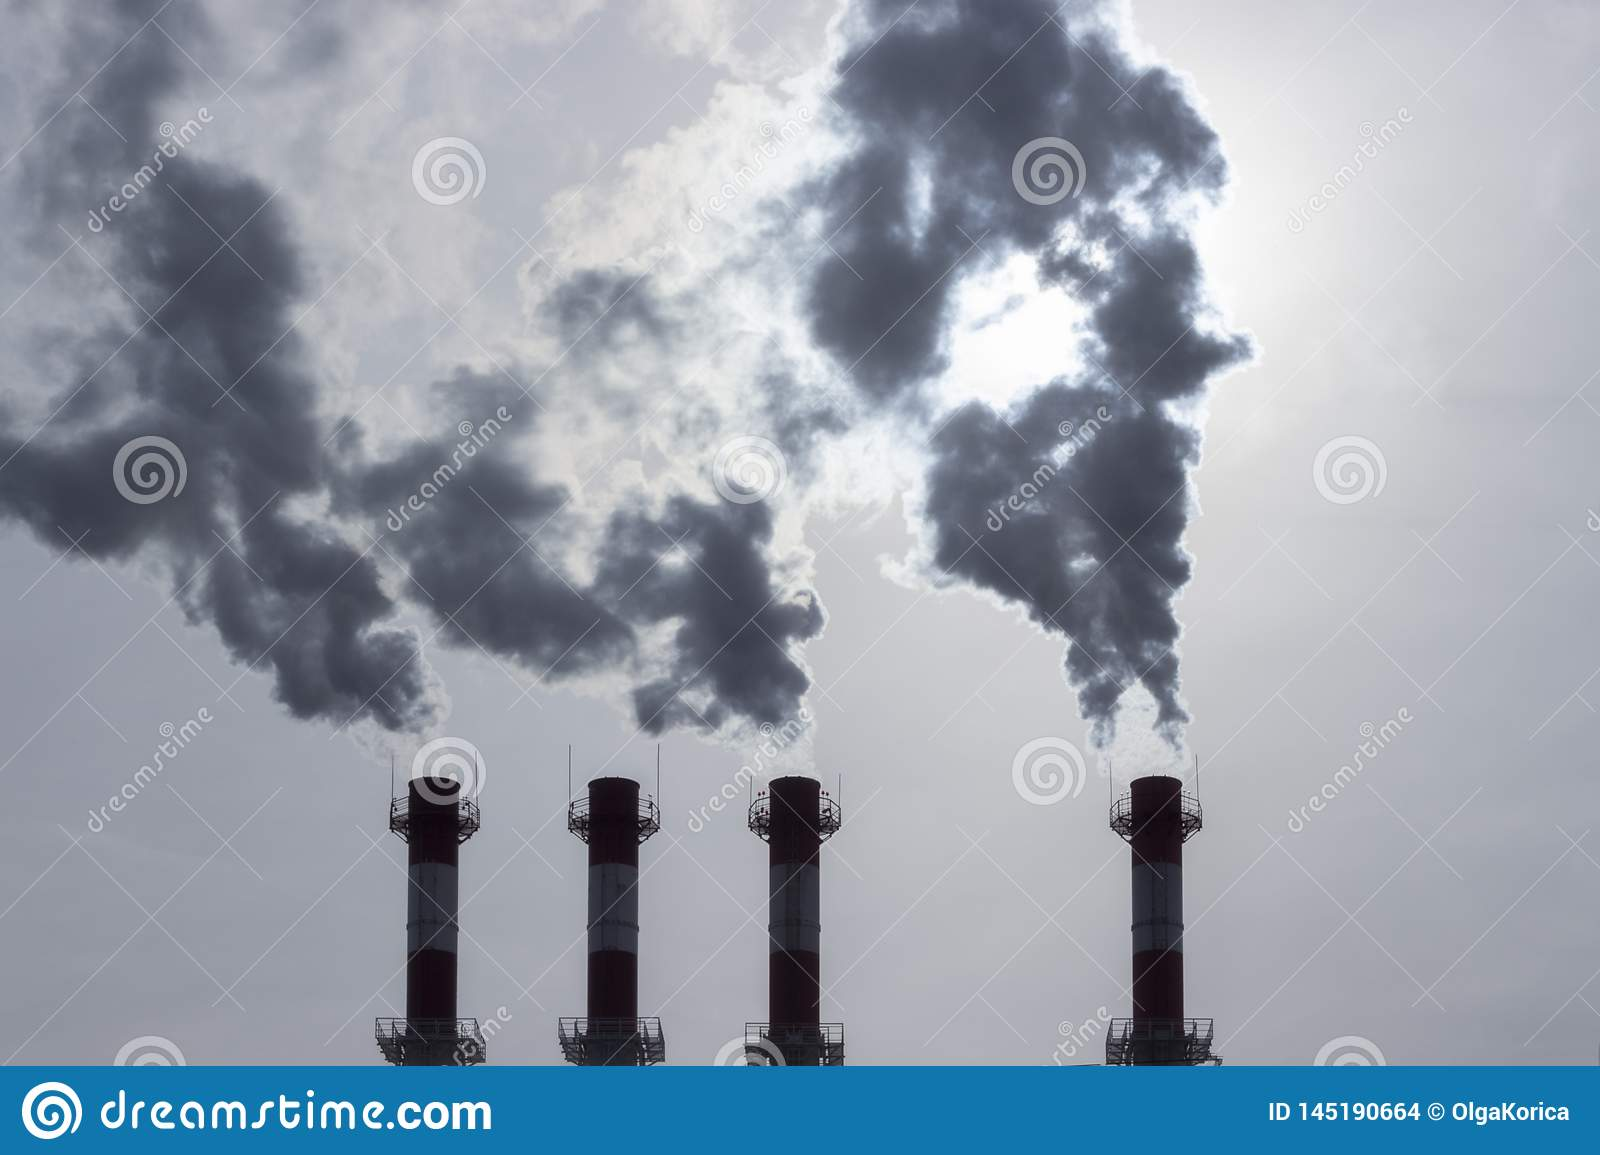 Silhouettes of pipes emitting dark steam into the atmosphere. air pollution by toxic fumes. Poisoned air atmosphere